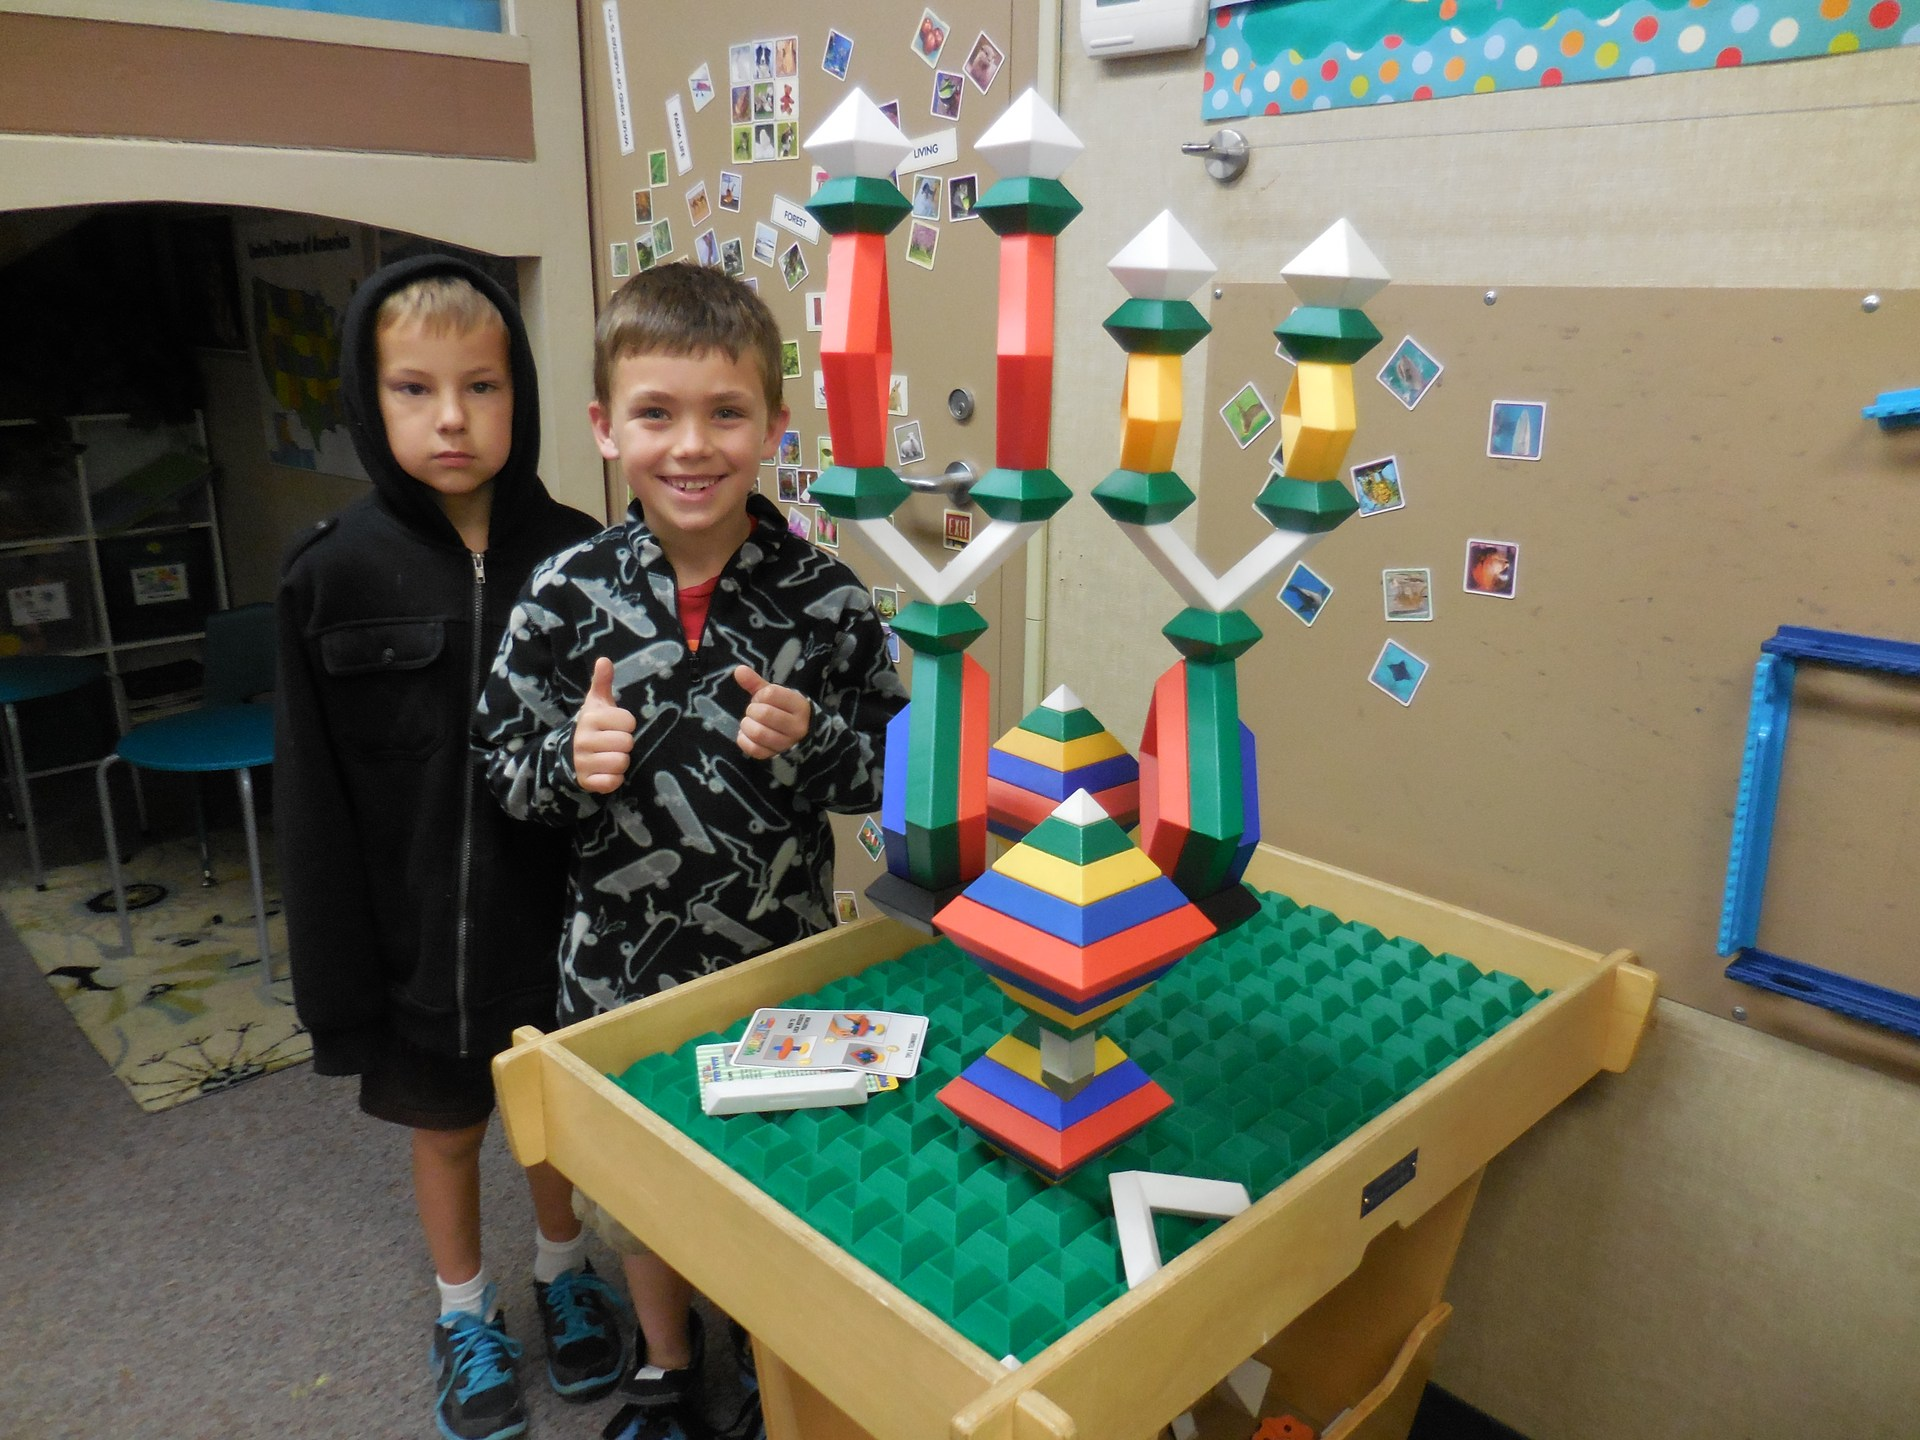 Two students stacking toys